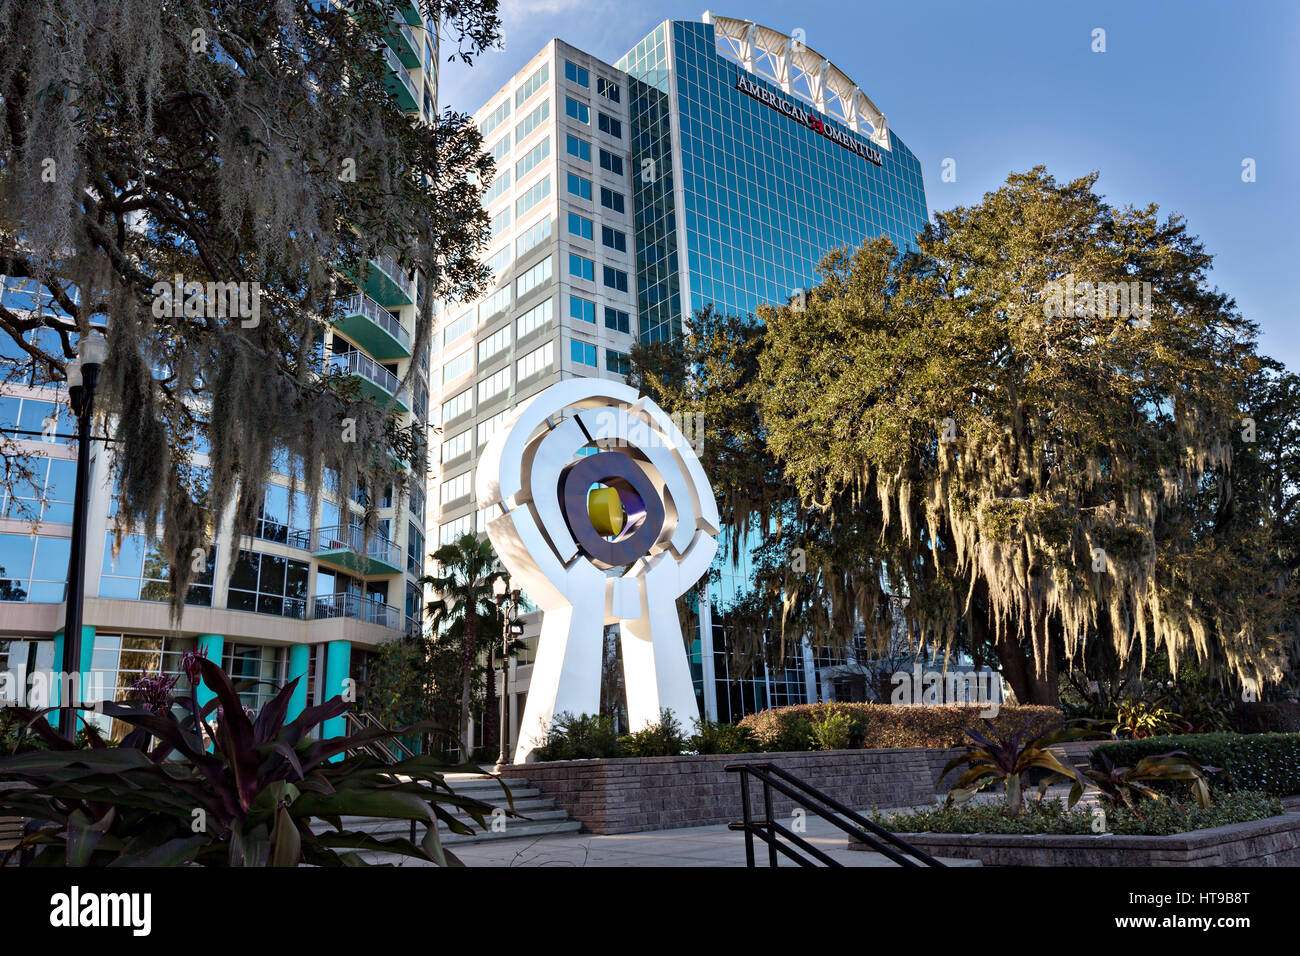 Monumental sculpture Centered by artist C.J Rench along Lake Eola Park in Orlando, Florida. Lake Eola Park is located - Stock Image